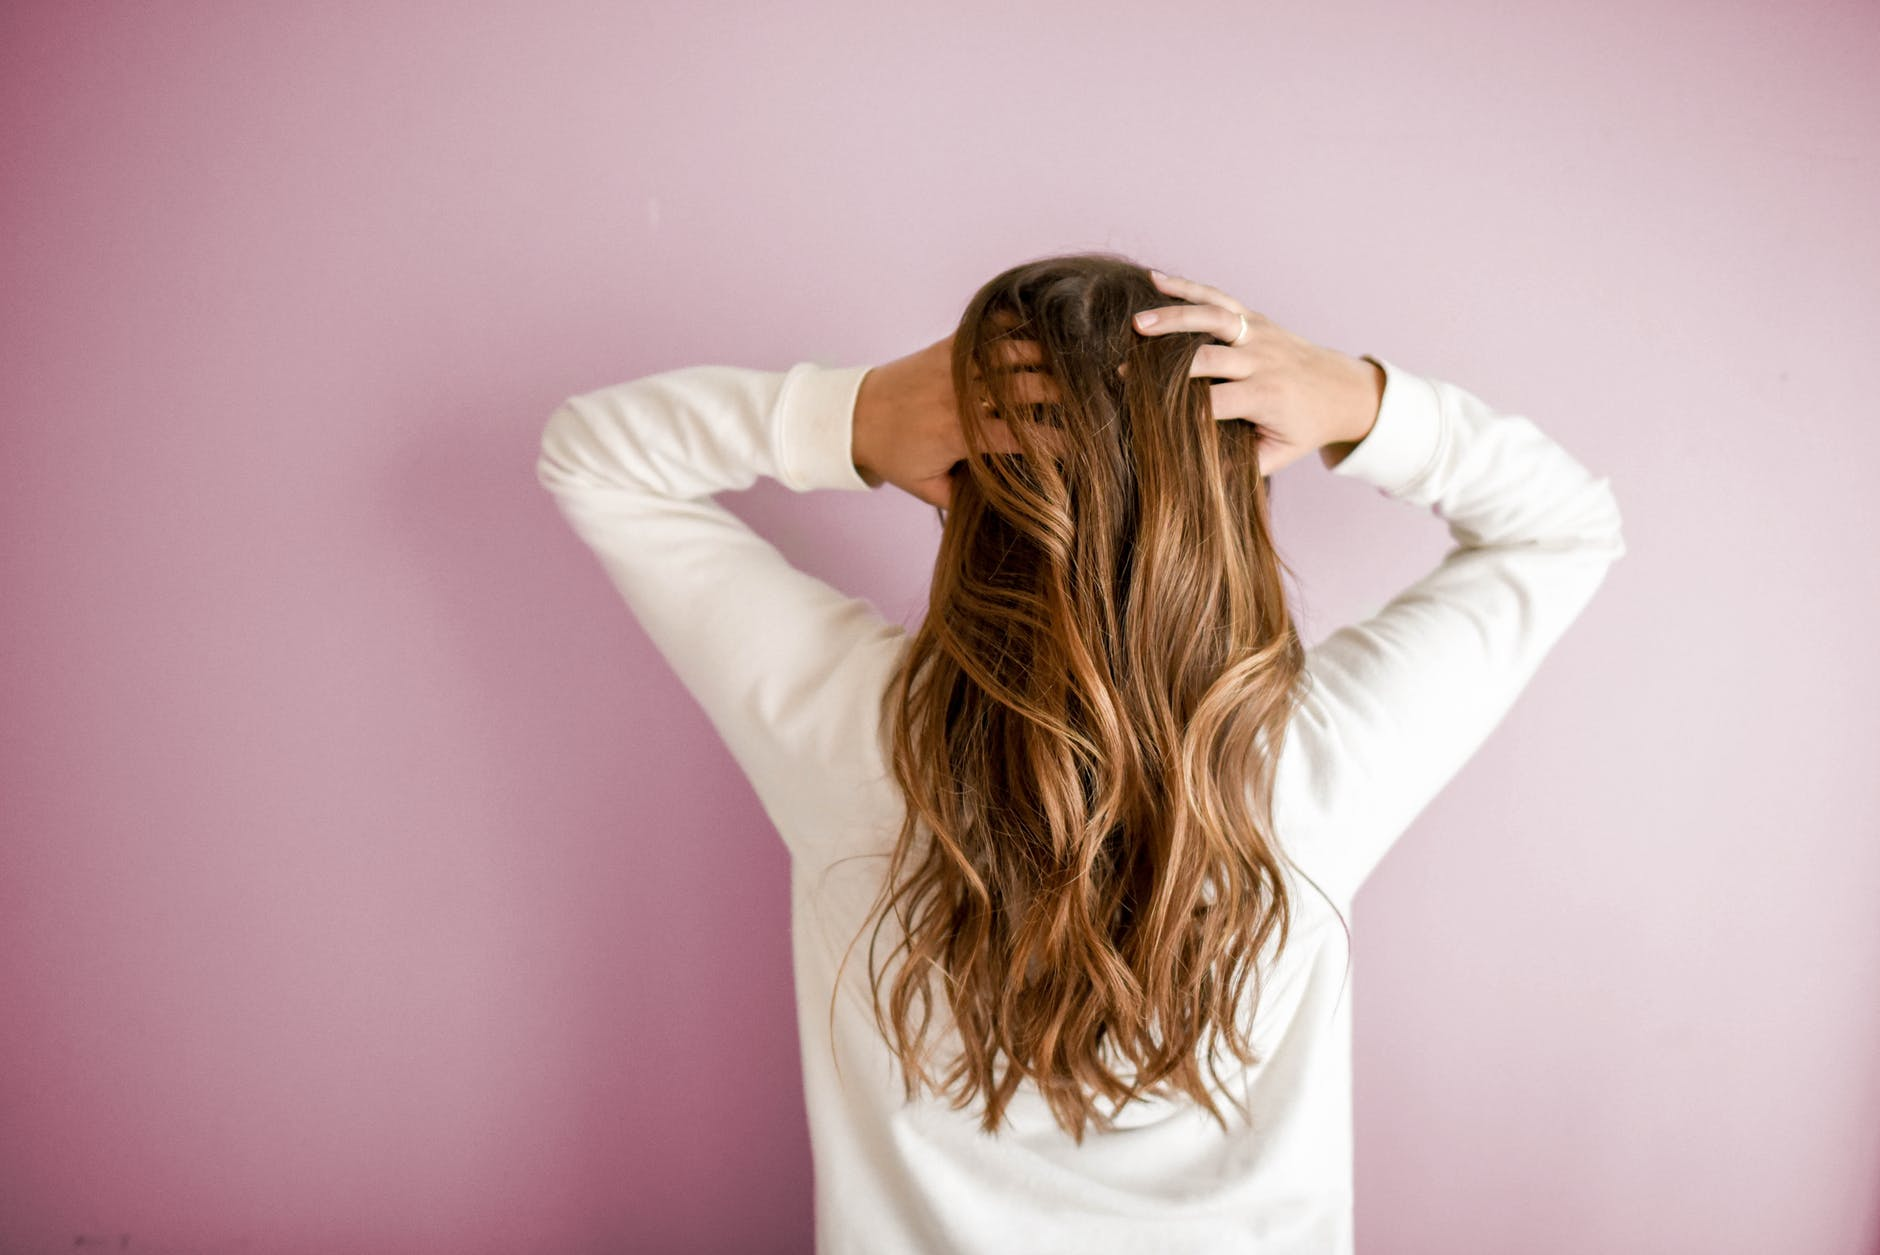 98 nouns words to describe people hair